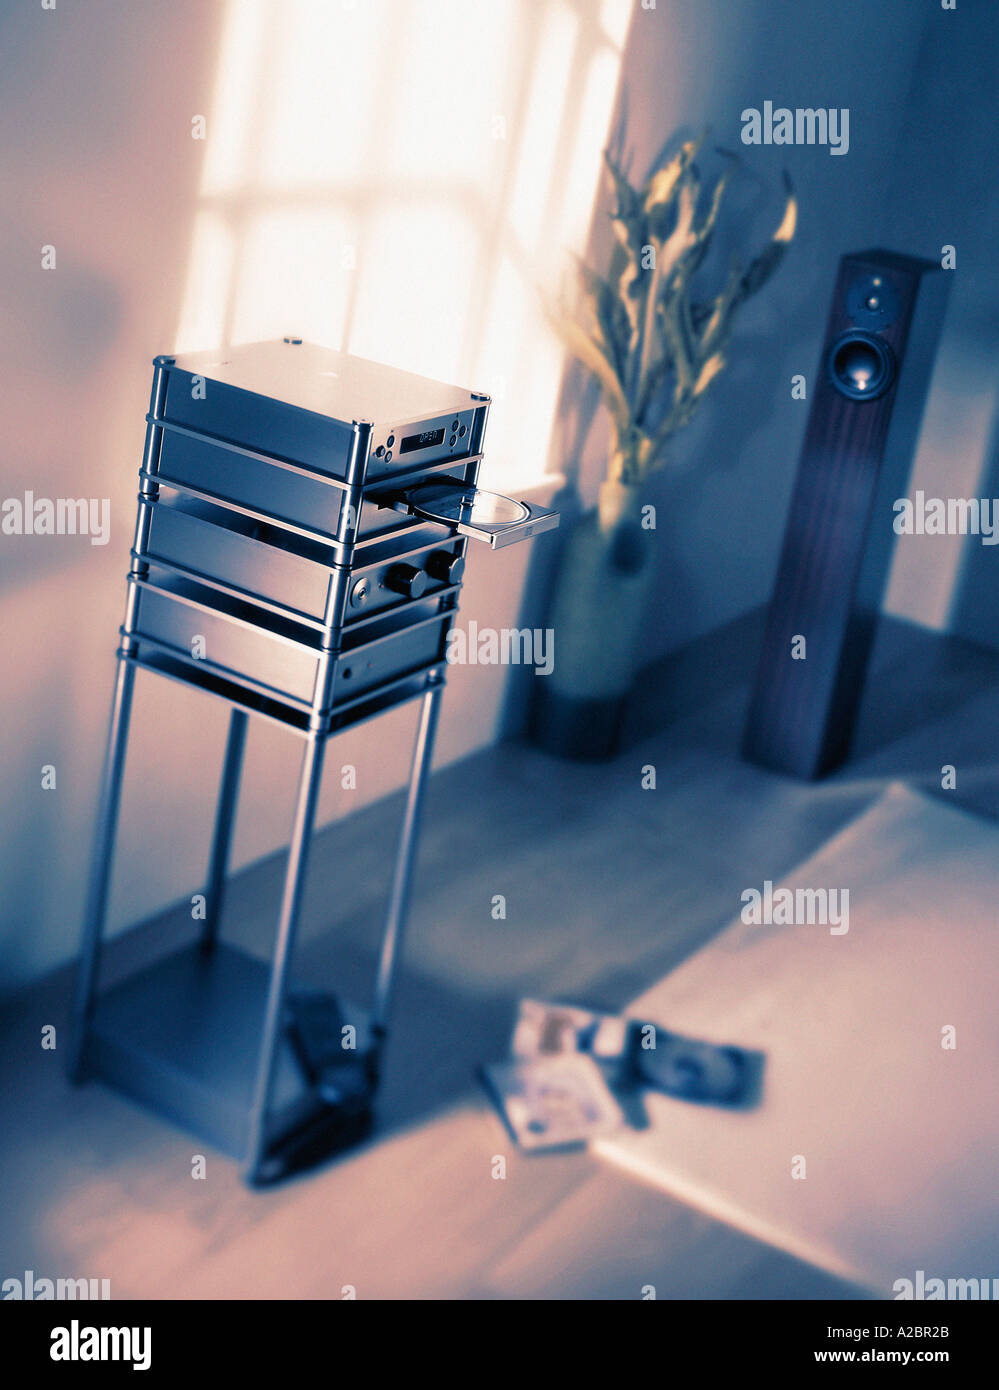 EXPENSIVE HI FI SYSTEM IN LUXURY FLAT - Stock Image